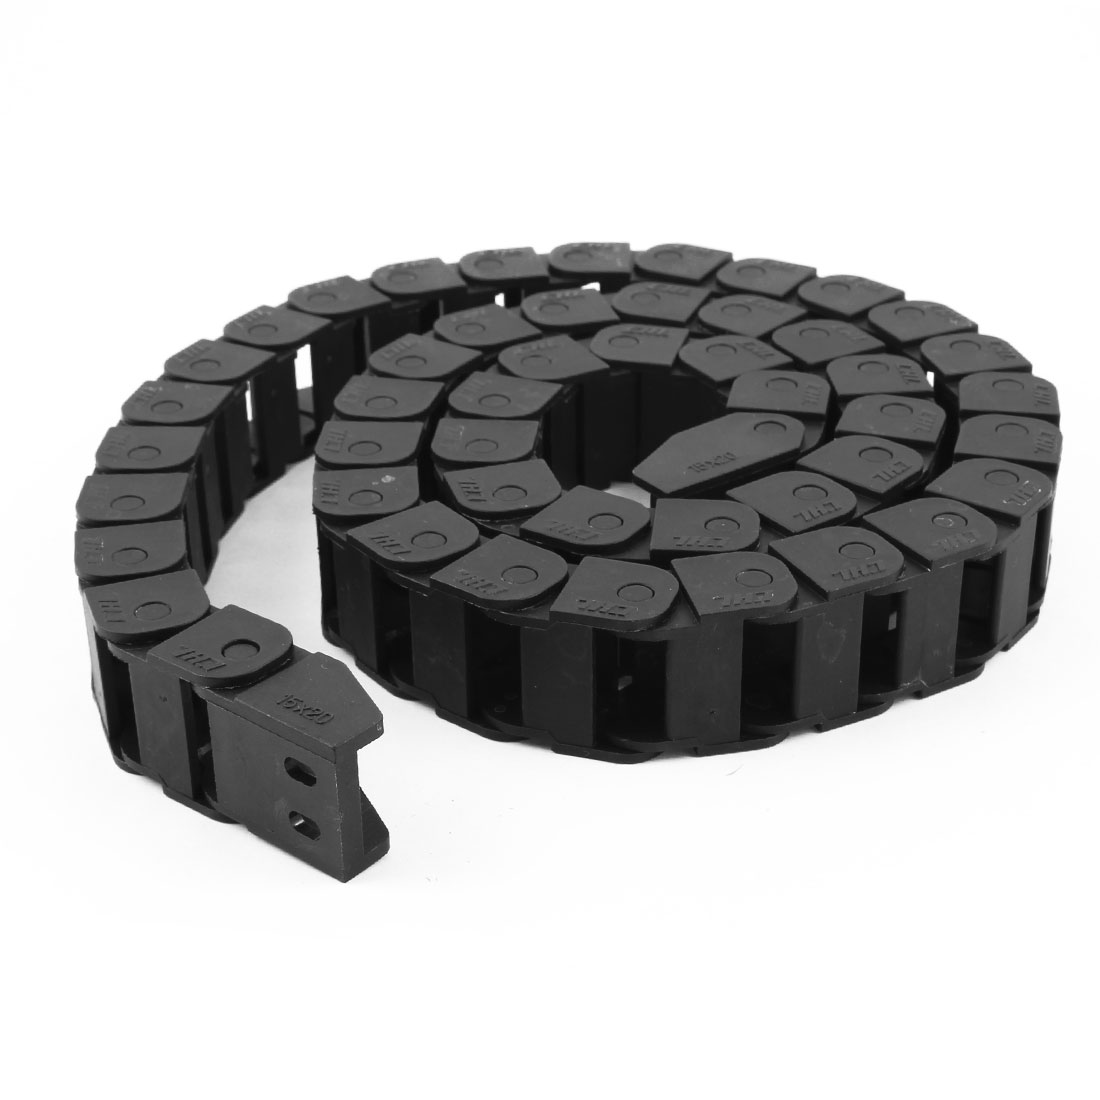 Machine Tool 1 Meter 3.3Ft Long Plastic Cable Drag Chain 15mm x 20mm Black